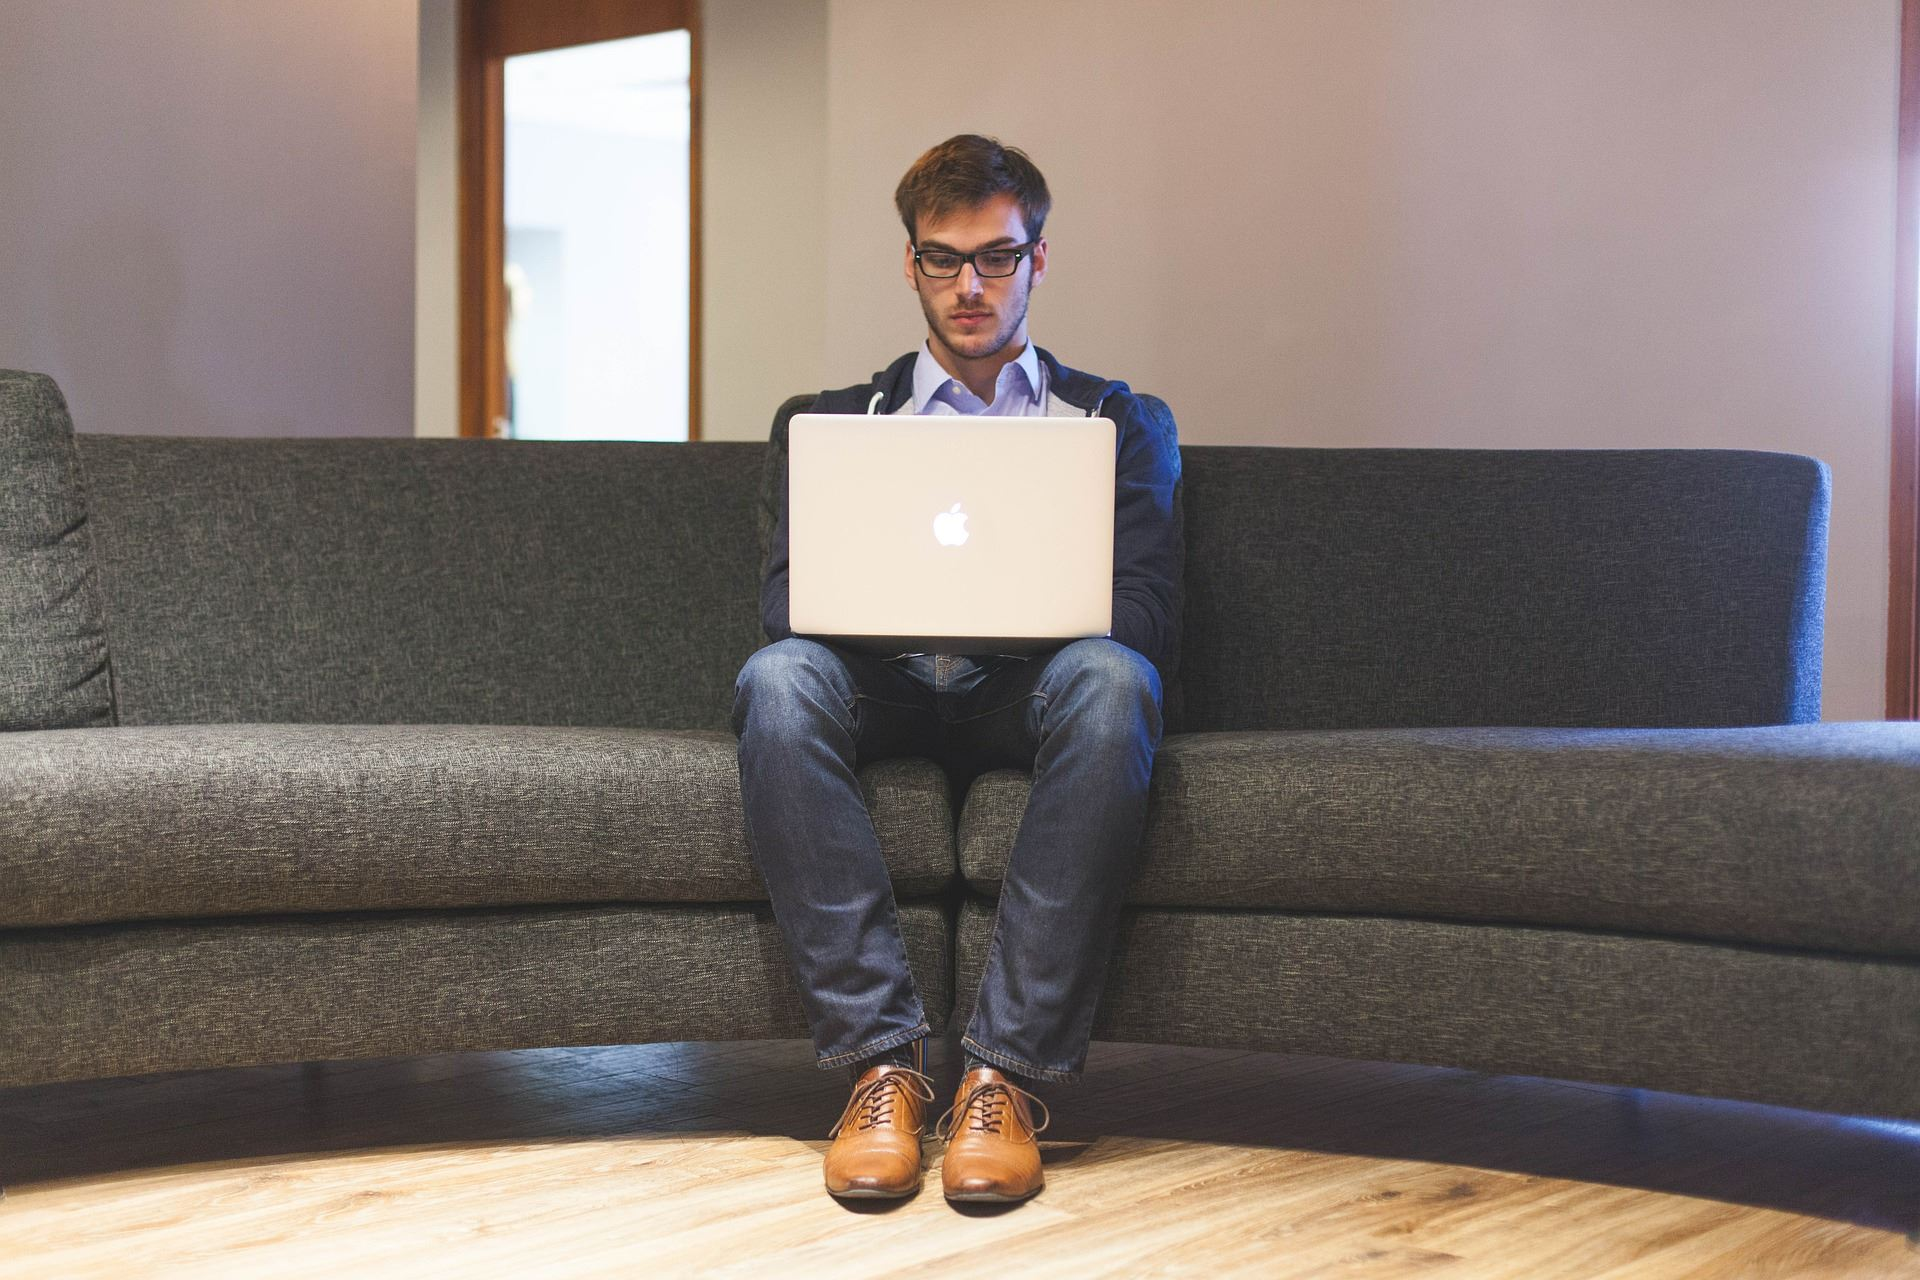 Entrepreneur sitting on couch